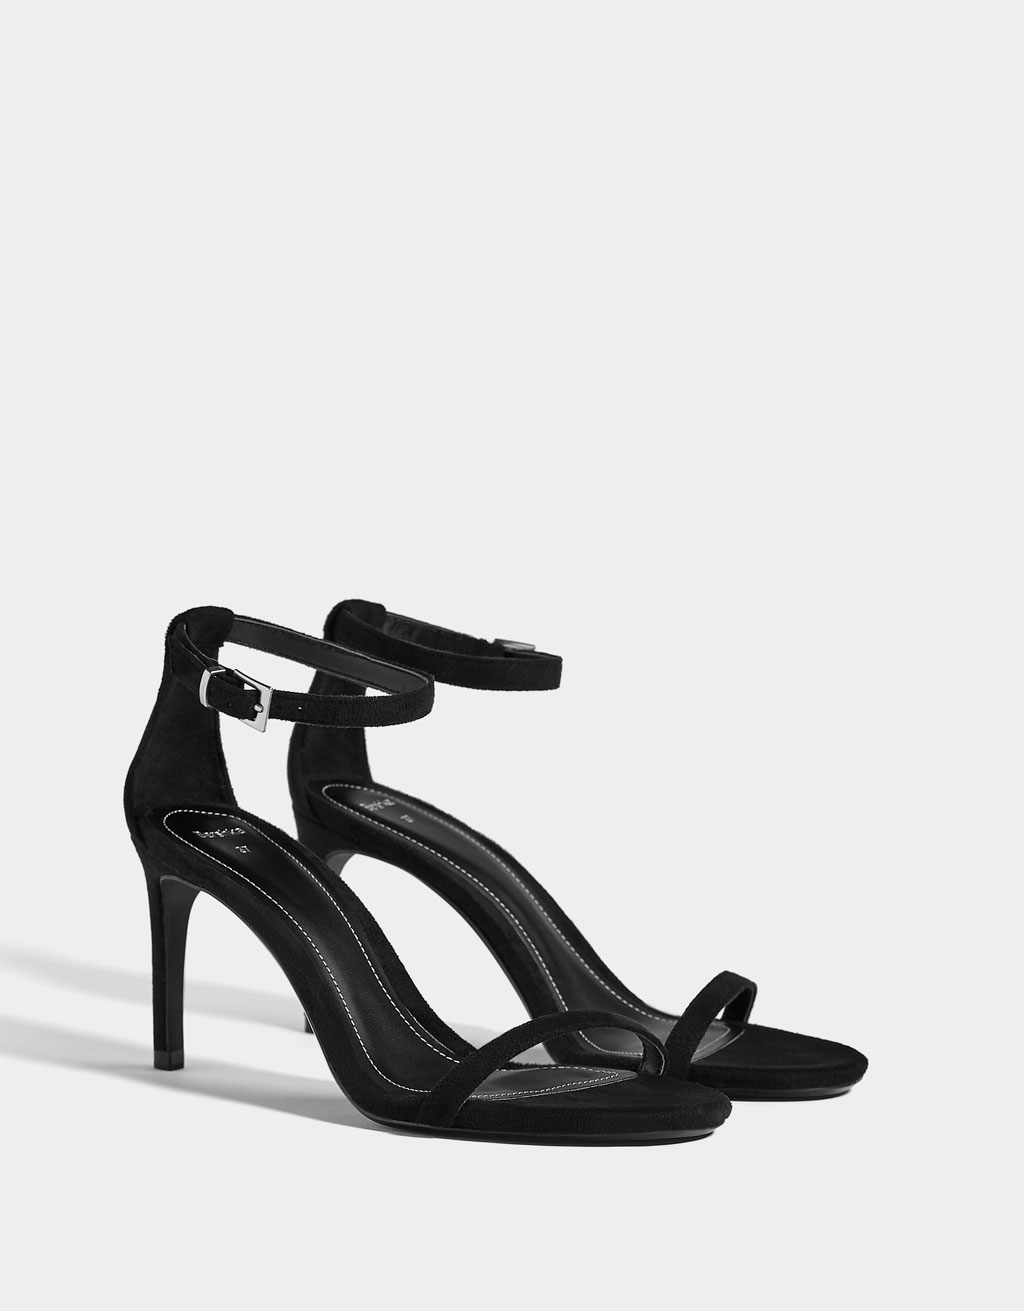 Stiletto heel sandals with ankle straps